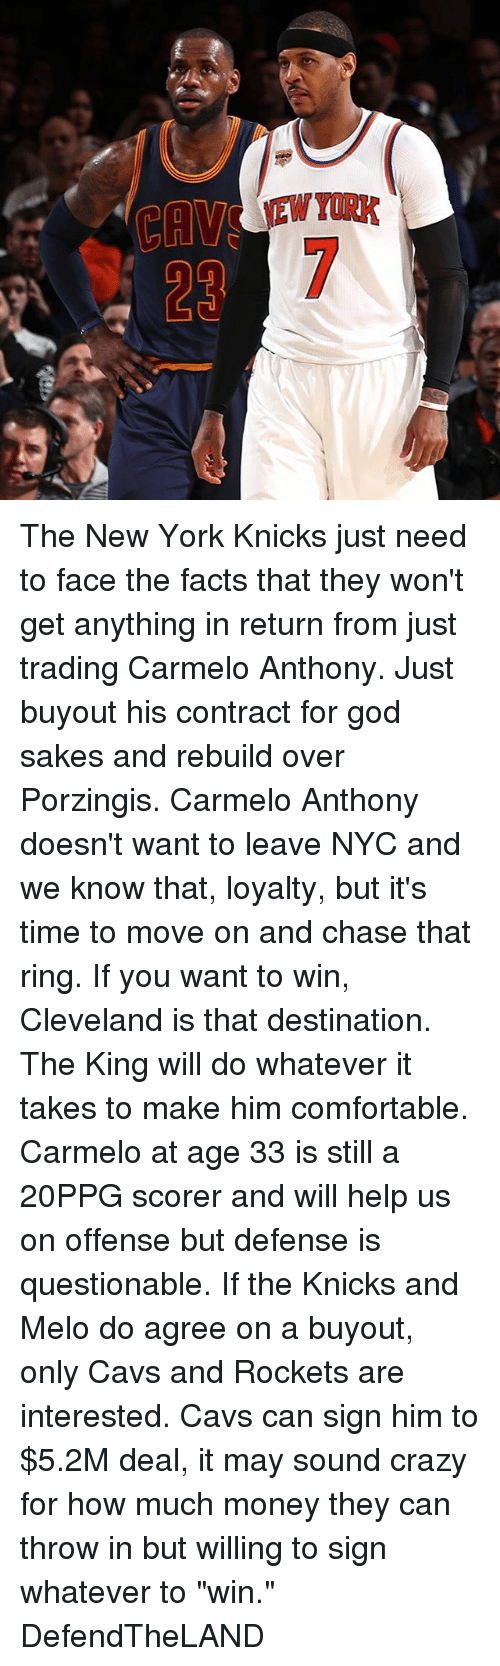 """porzingis: The New York Knicks just need to face the facts that they won't get anything in return from just trading Carmelo Anthony. Just buyout his contract for god sakes and rebuild over Porzingis. Carmelo Anthony doesn't want to leave NYC and we know that, loyalty, but it's time to move on and chase that ring. If you want to win, Cleveland is that destination. The King will do whatever it takes to make him comfortable. Carmelo at age 33 is still a 20PPG scorer and will help us on offense but defense is questionable. If the Knicks and Melo do agree on a buyout, only Cavs and Rockets are interested. Cavs can sign him to $5.2M deal, it may sound crazy for how much money they can throw in but willing to sign whatever to """"win."""" DefendTheLAND"""